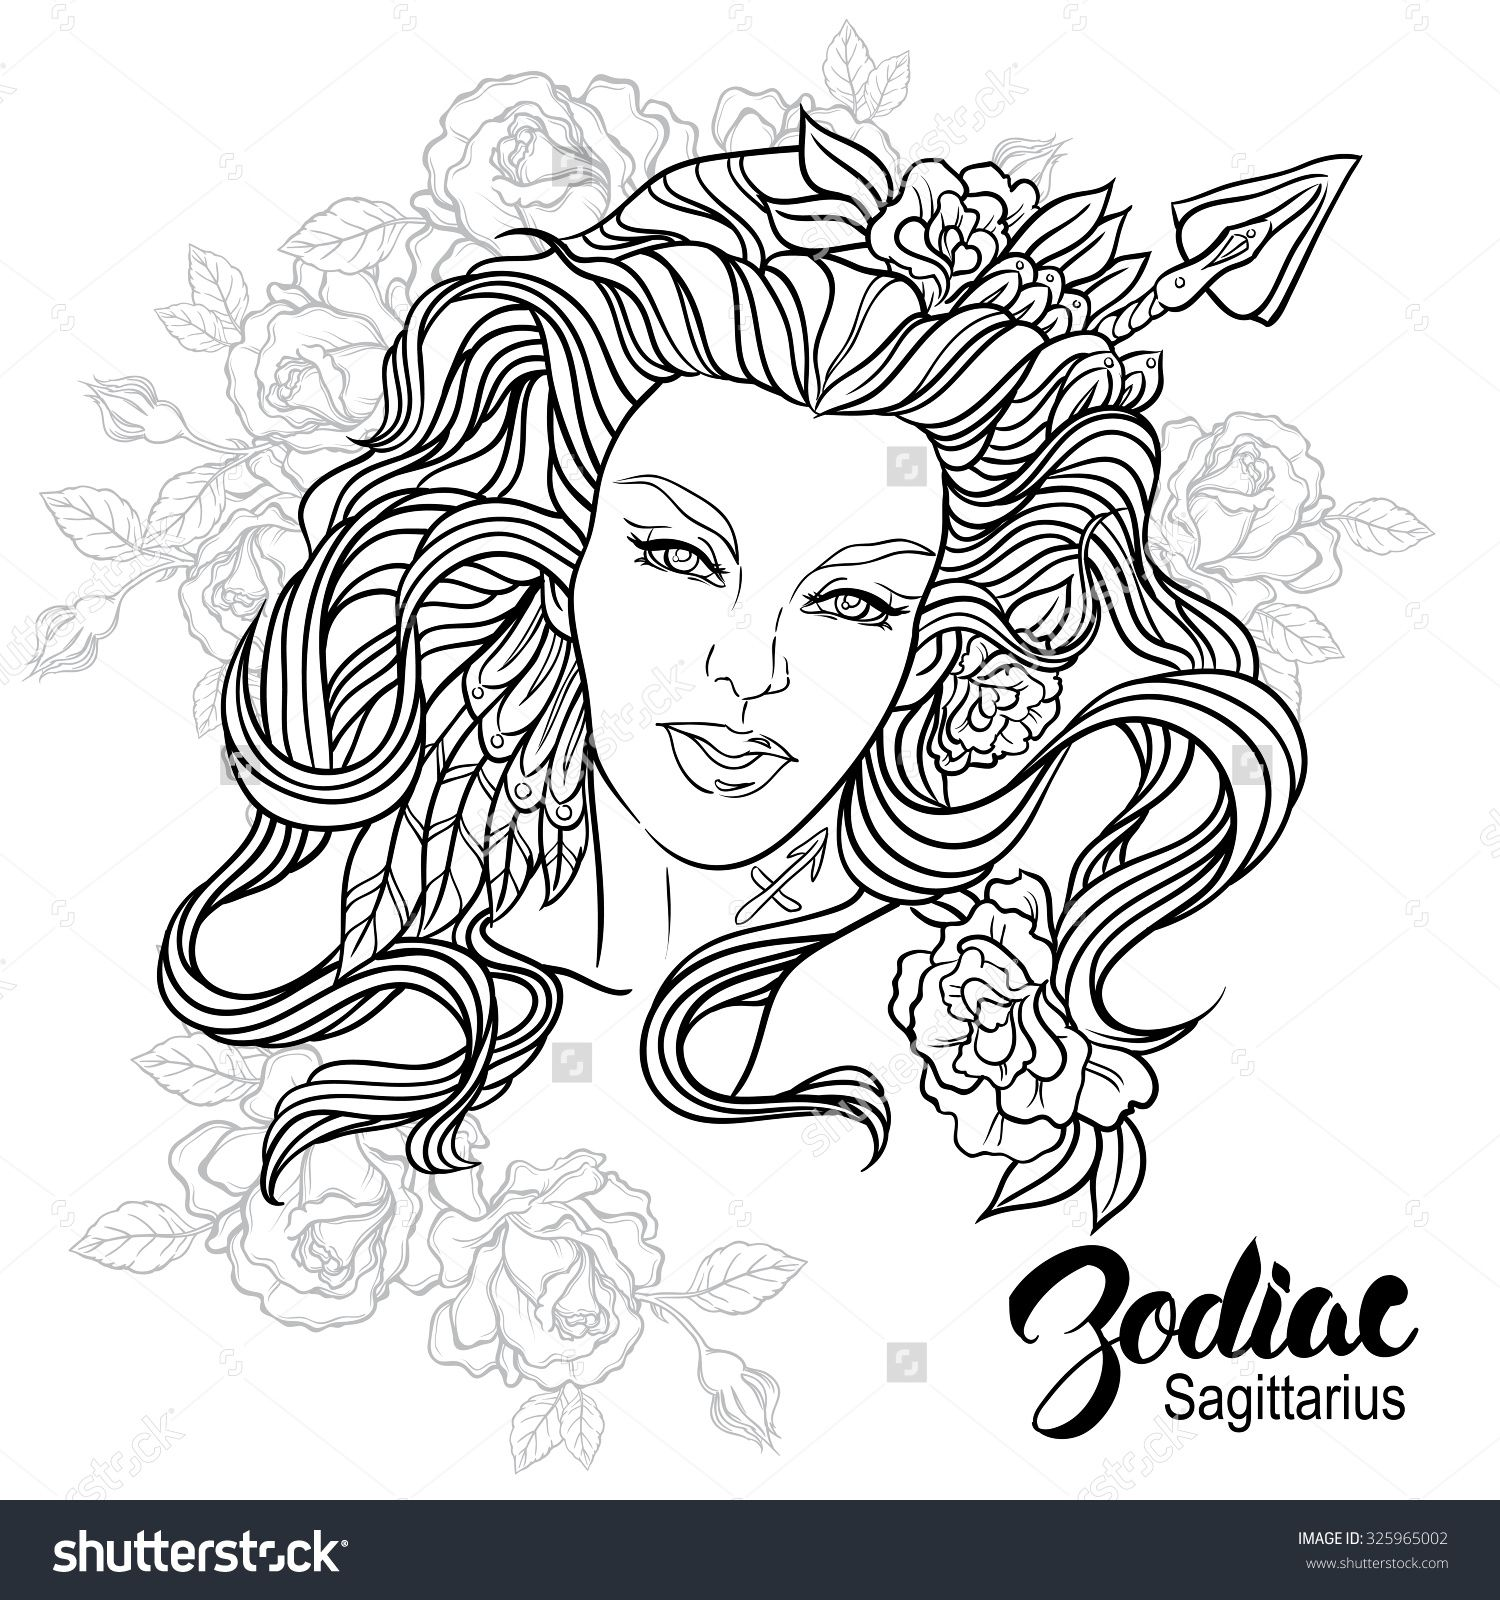 Free printable zodiac coloring pages - Zodiac Vector Illustration Of Sagittarius As Girl With Flowers Design For Coloring Book Page Stock Vector From The Largest Library Of Royalty Free